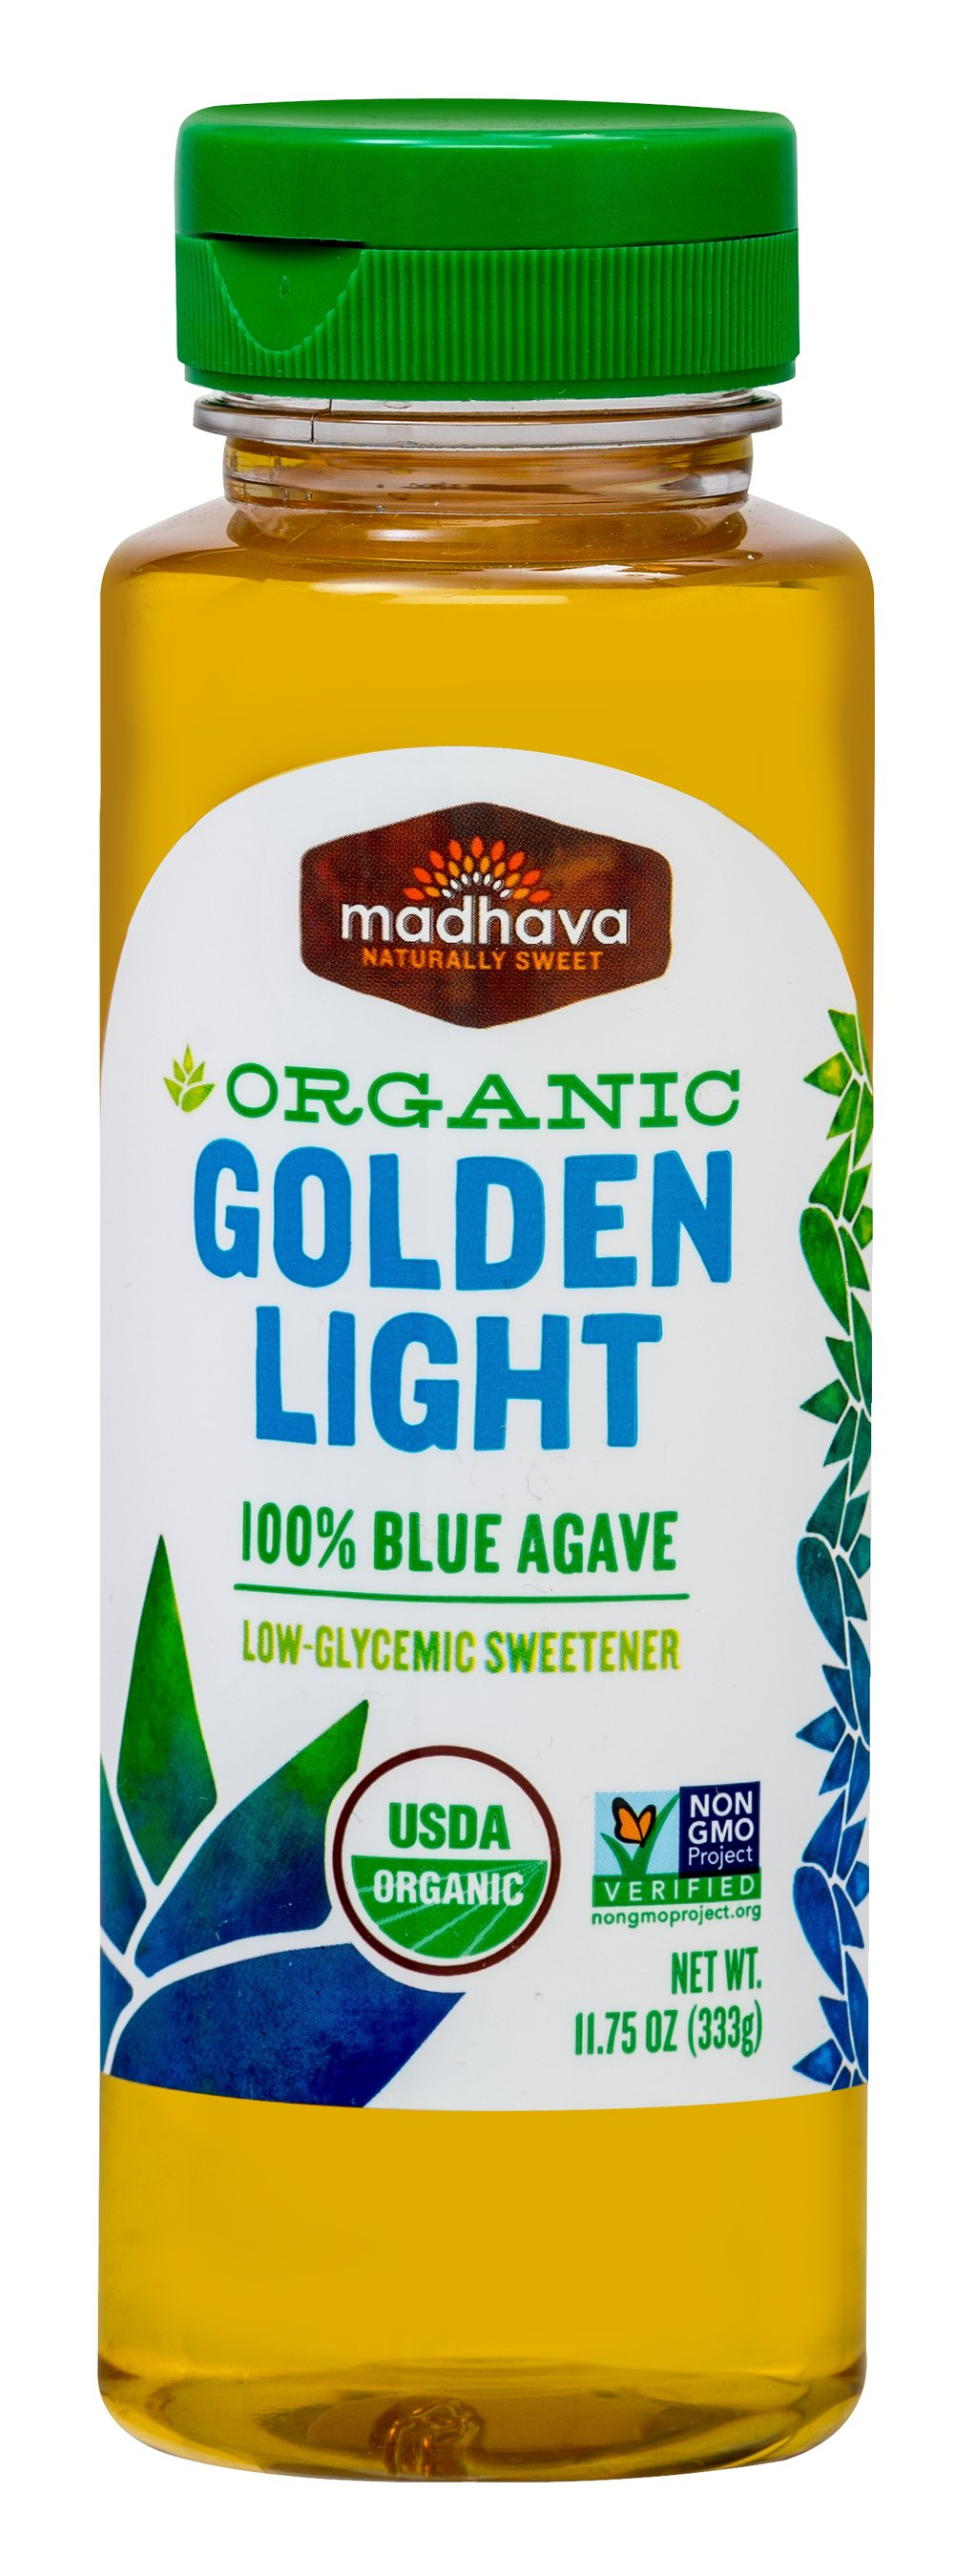 Organic Light Agave Nectar <p><strong>From the Manufacturer's Label: </strong></p><p>100% Pure Agave Nectar</p><p>Madhava's Agave Nectar has many qualities that make it ideal for all of your sweetening needs. Consistently delicious and mild in flavor. Dissolves quickly, even in cold food or drinks.  Best of all, it simply tastes great and enhances the flavors of any food it sweetens.  Enjoy!</p> 11.75 oz Bottle  $7.99